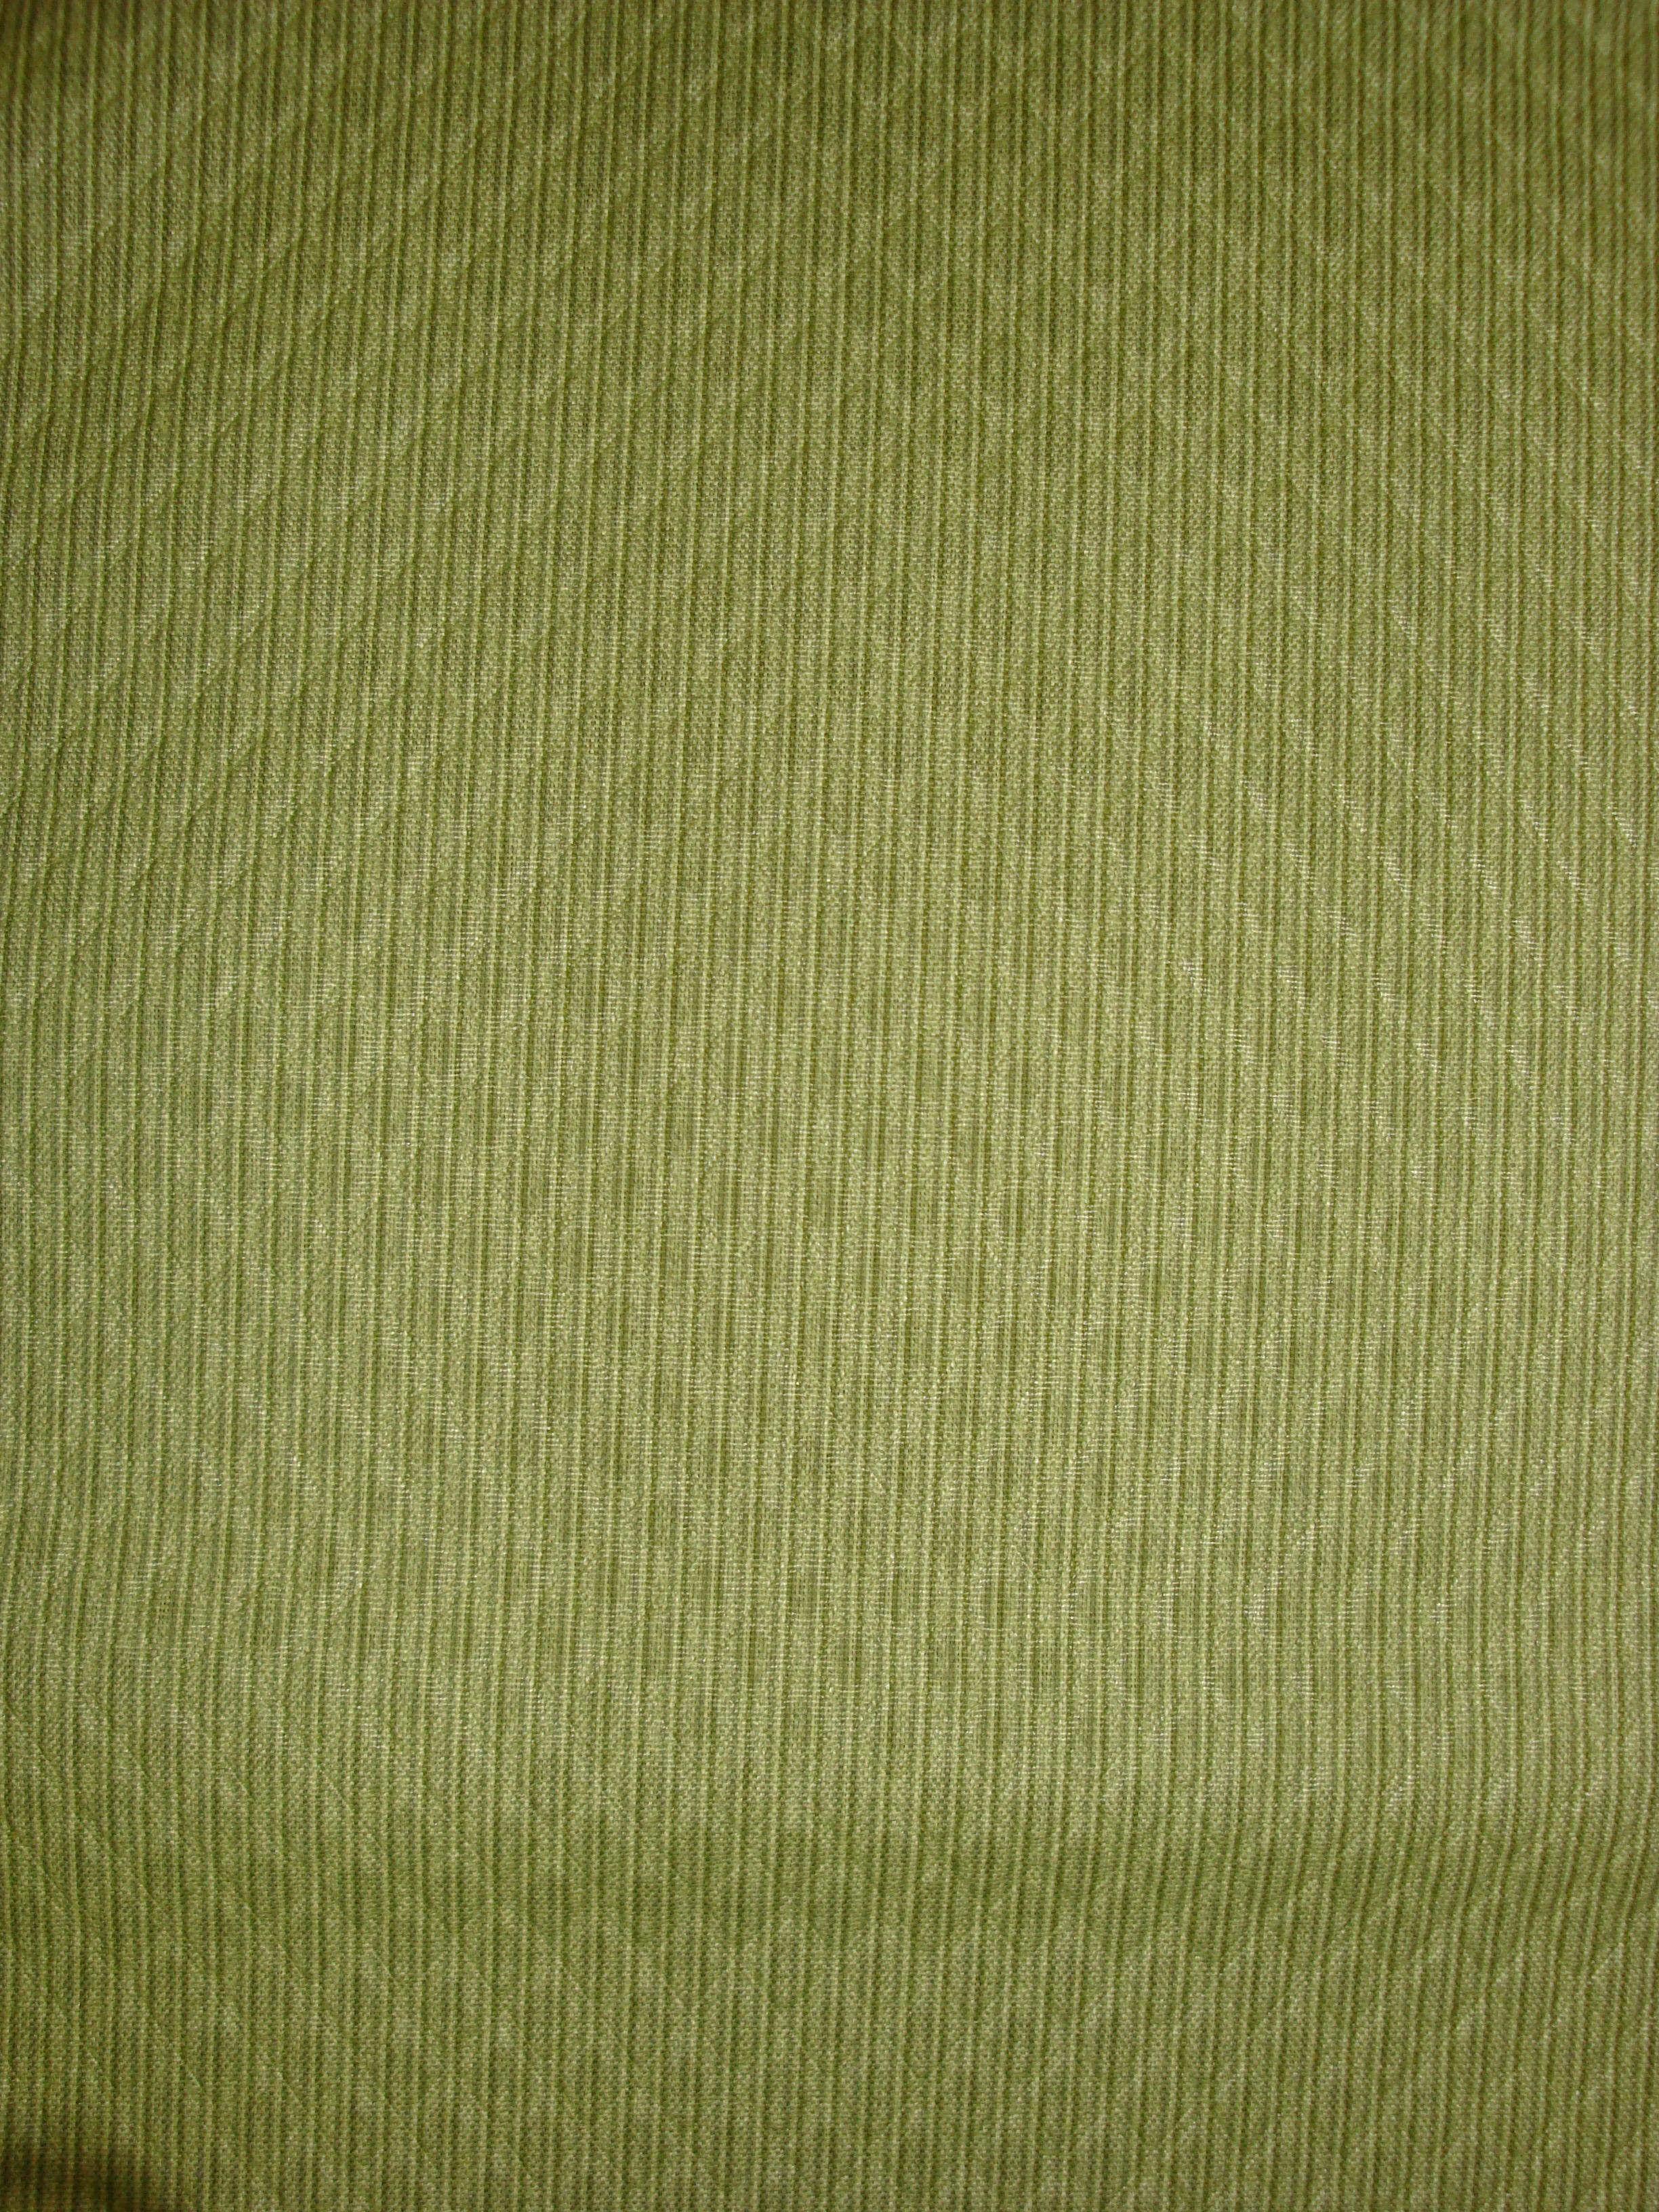 Grand Bahamas Dining Armchair in Urban Mahogany-Fabric:Green Diamonds by Boca Rattan